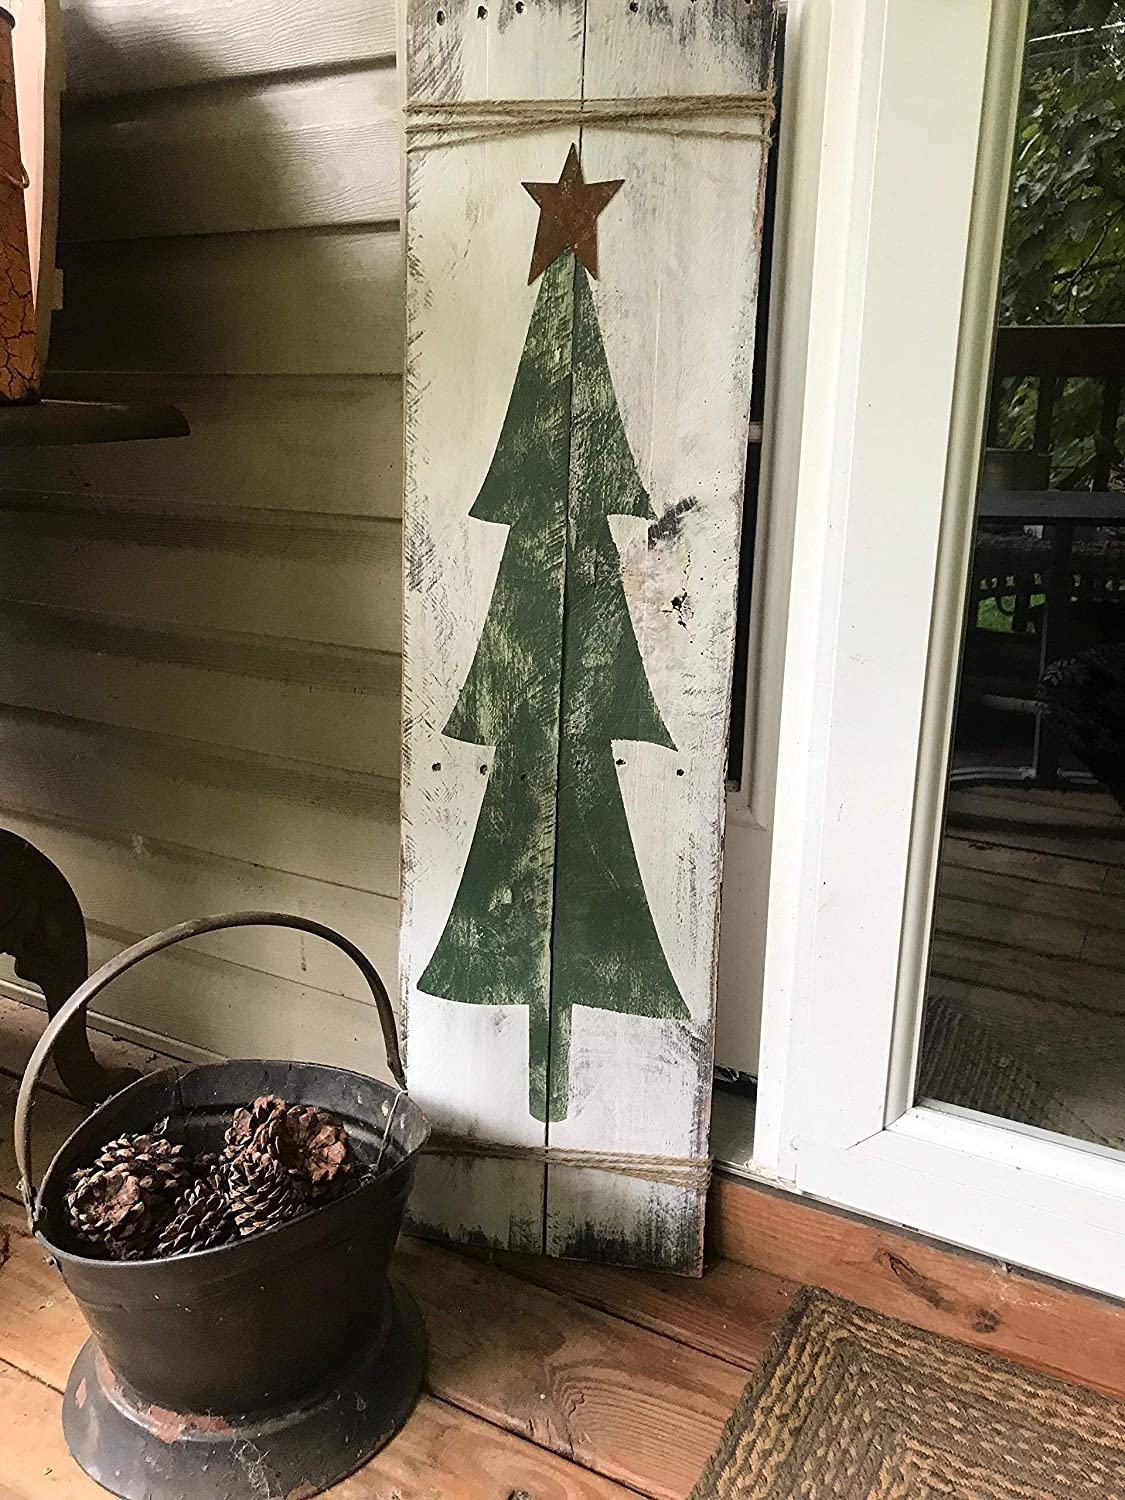 Wood Pallet Christmas Tree.Amazon Com Rustic Christmas Tree Reclaimed Wood Pallet